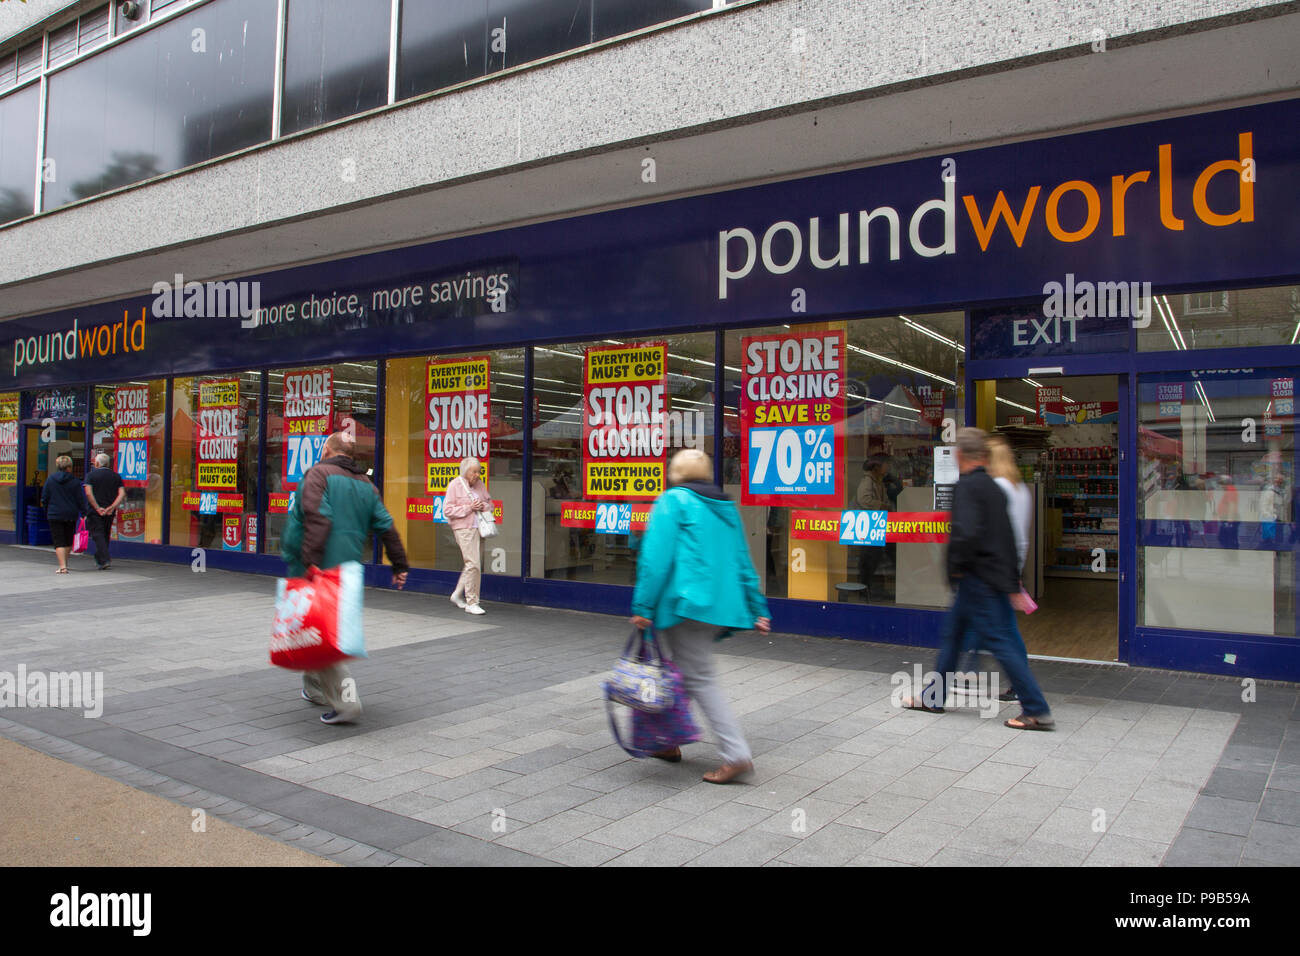 Southport, Merseyside, 17/07/2018. Chapel Street PoundWorld closing down sale, high street stores face closure in the seaside town. Market stalls and street traders now seem to dominate the retail landscapes as traditional fashion and discount stores become casualties of high business rates.  Credit: MediaWorldImages/AlamyLiveNews. Stock Photo